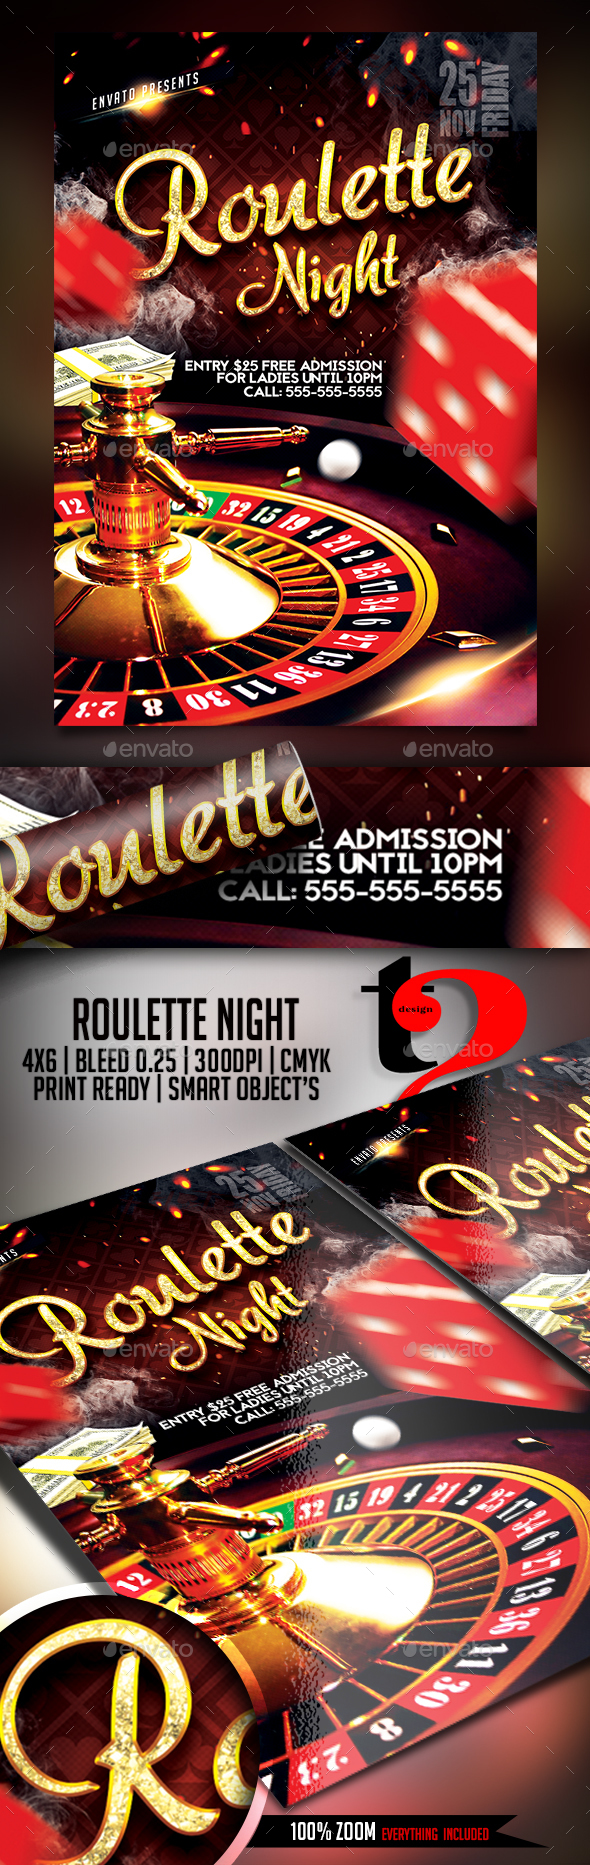 Roulette Night Flyer Template - Clubs & Parties Events